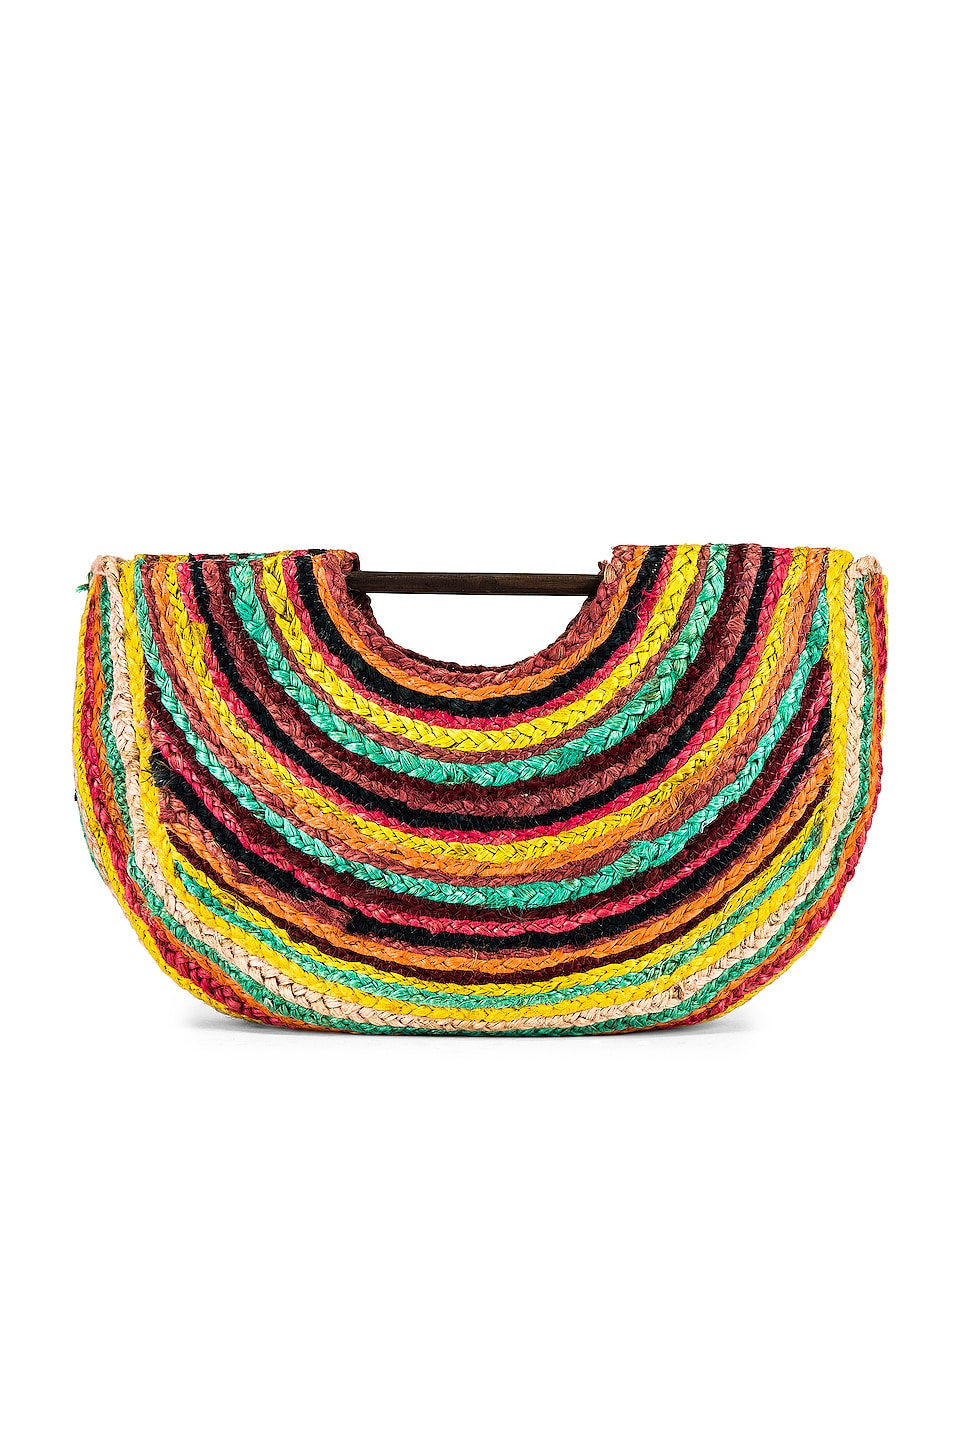 Lovers + Friends Luda Bag in Rainbow Multi